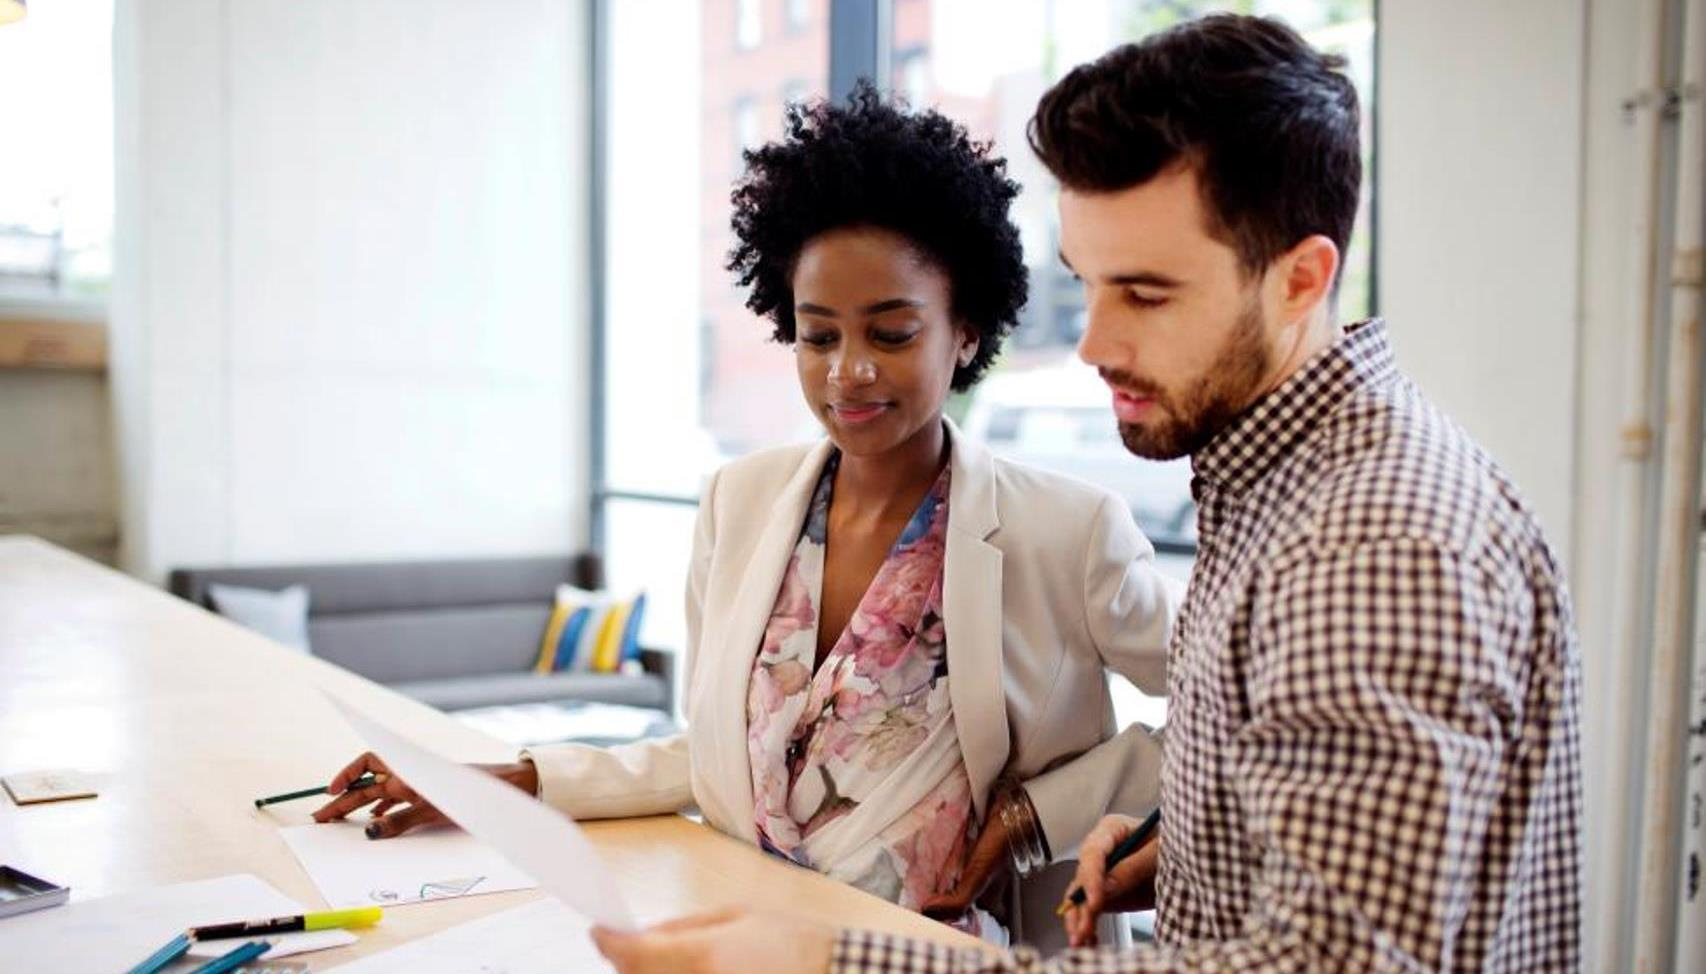 4 Invaluable Insights How to Pivot into Lasting Leadership